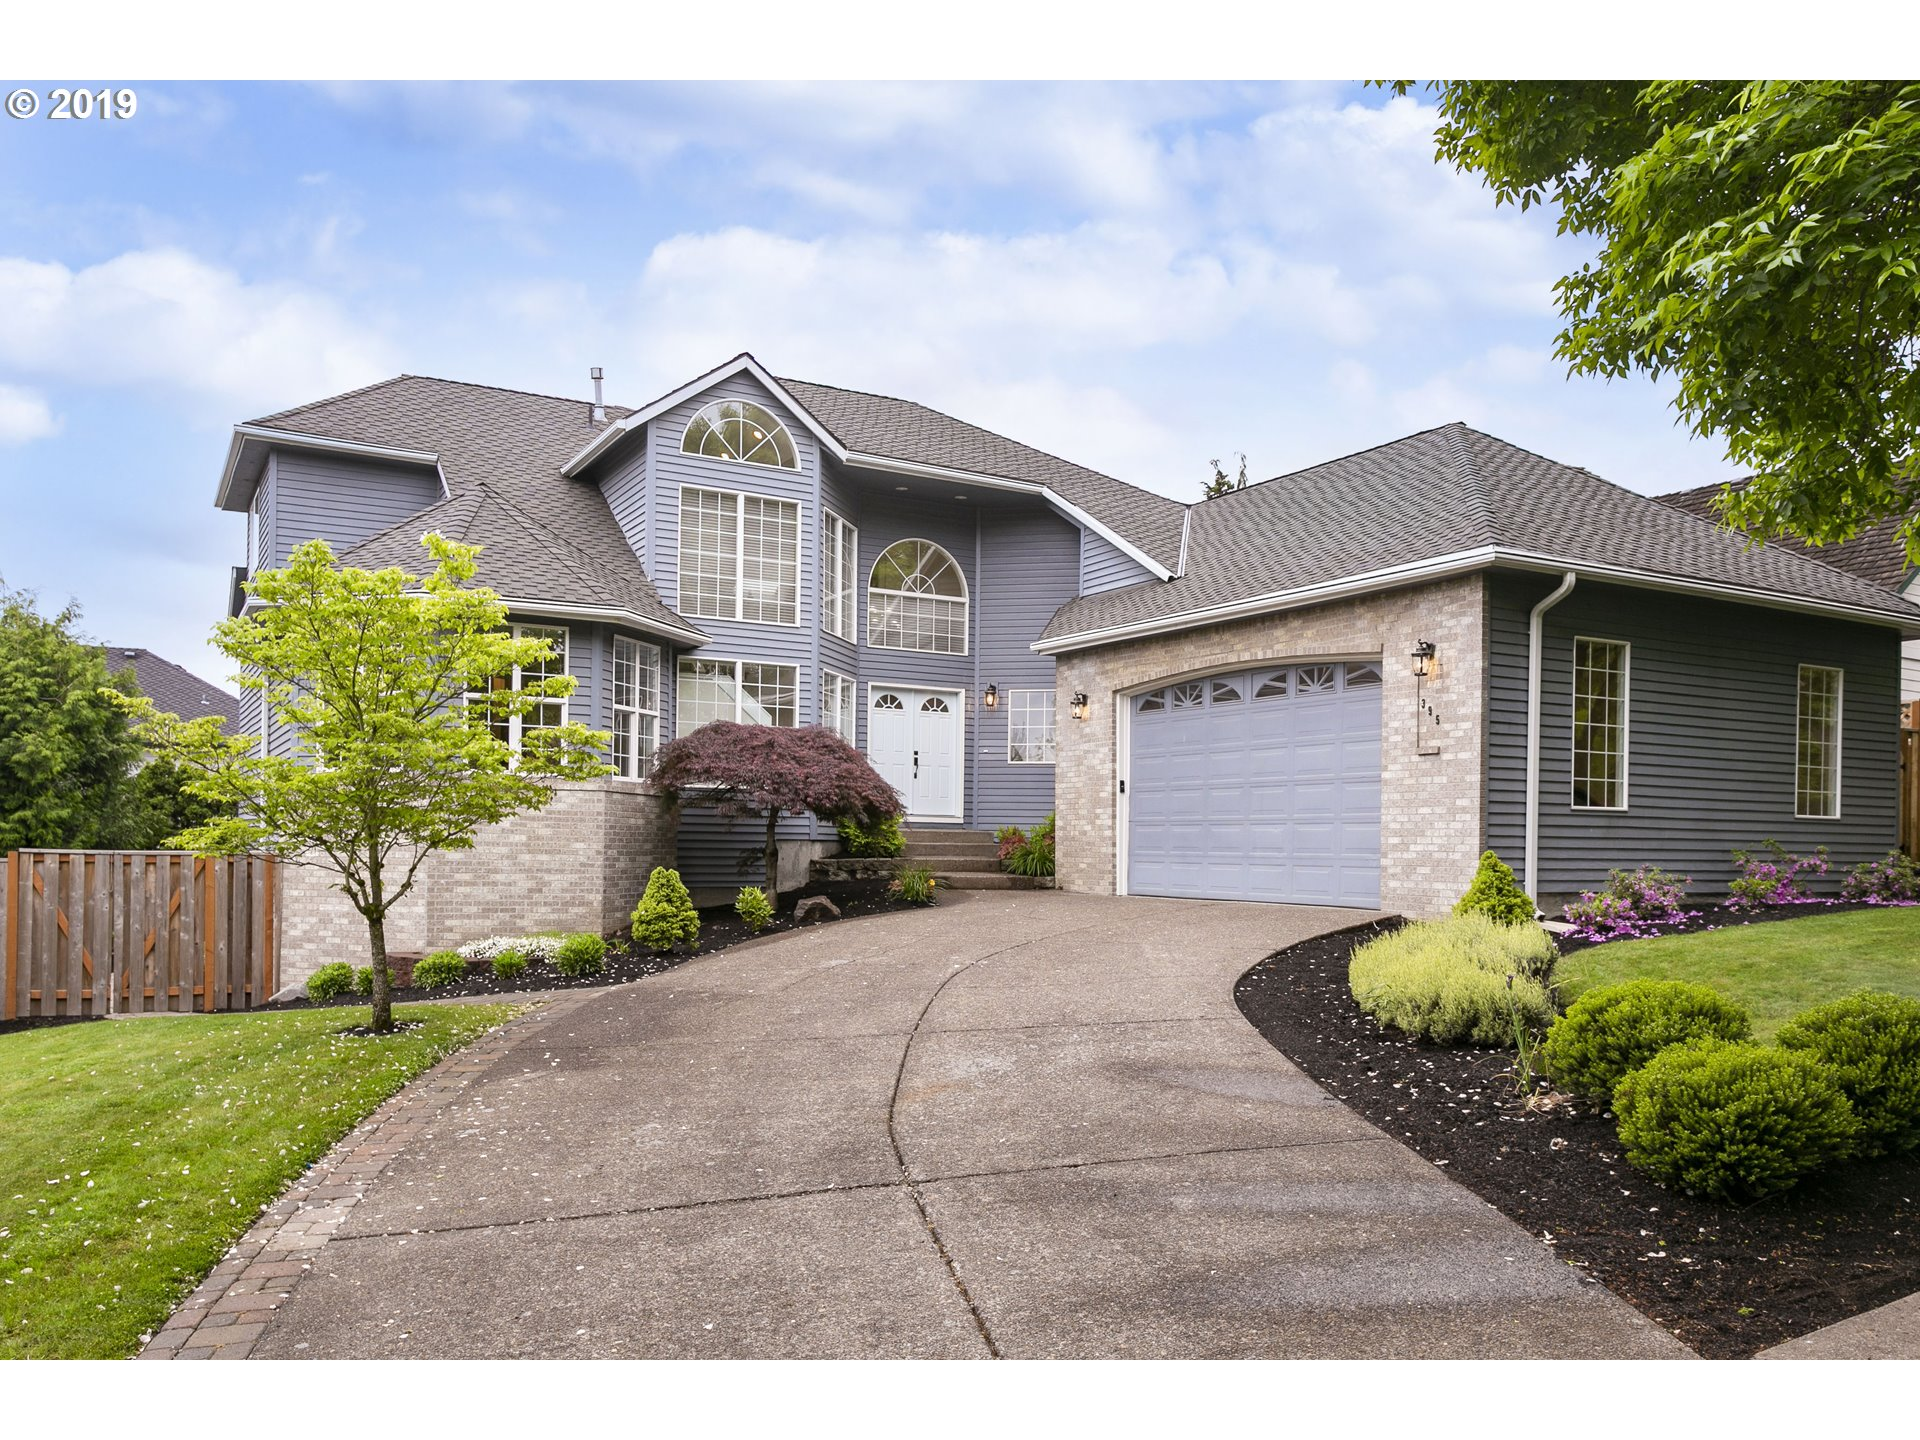 Stunning executive home in Waterhouse & close to Nike/Intel/dwntown. 5K+ sqft of living across 3 flrs. Inclds 2,000 sqft daylight bsmt which can be a suite for caretaker, inlaws, home office, or a lrg family. Two furnaces w/ A/C, two kitchens, two FPs, two fam rms, etc. Fncd yrd w/ deck, bltin vac, main flr mstr suite, vaulted ceilings, & flexible living options. Wlkng dist to parks, schools, shops, cafes, THPRD rec center, more!